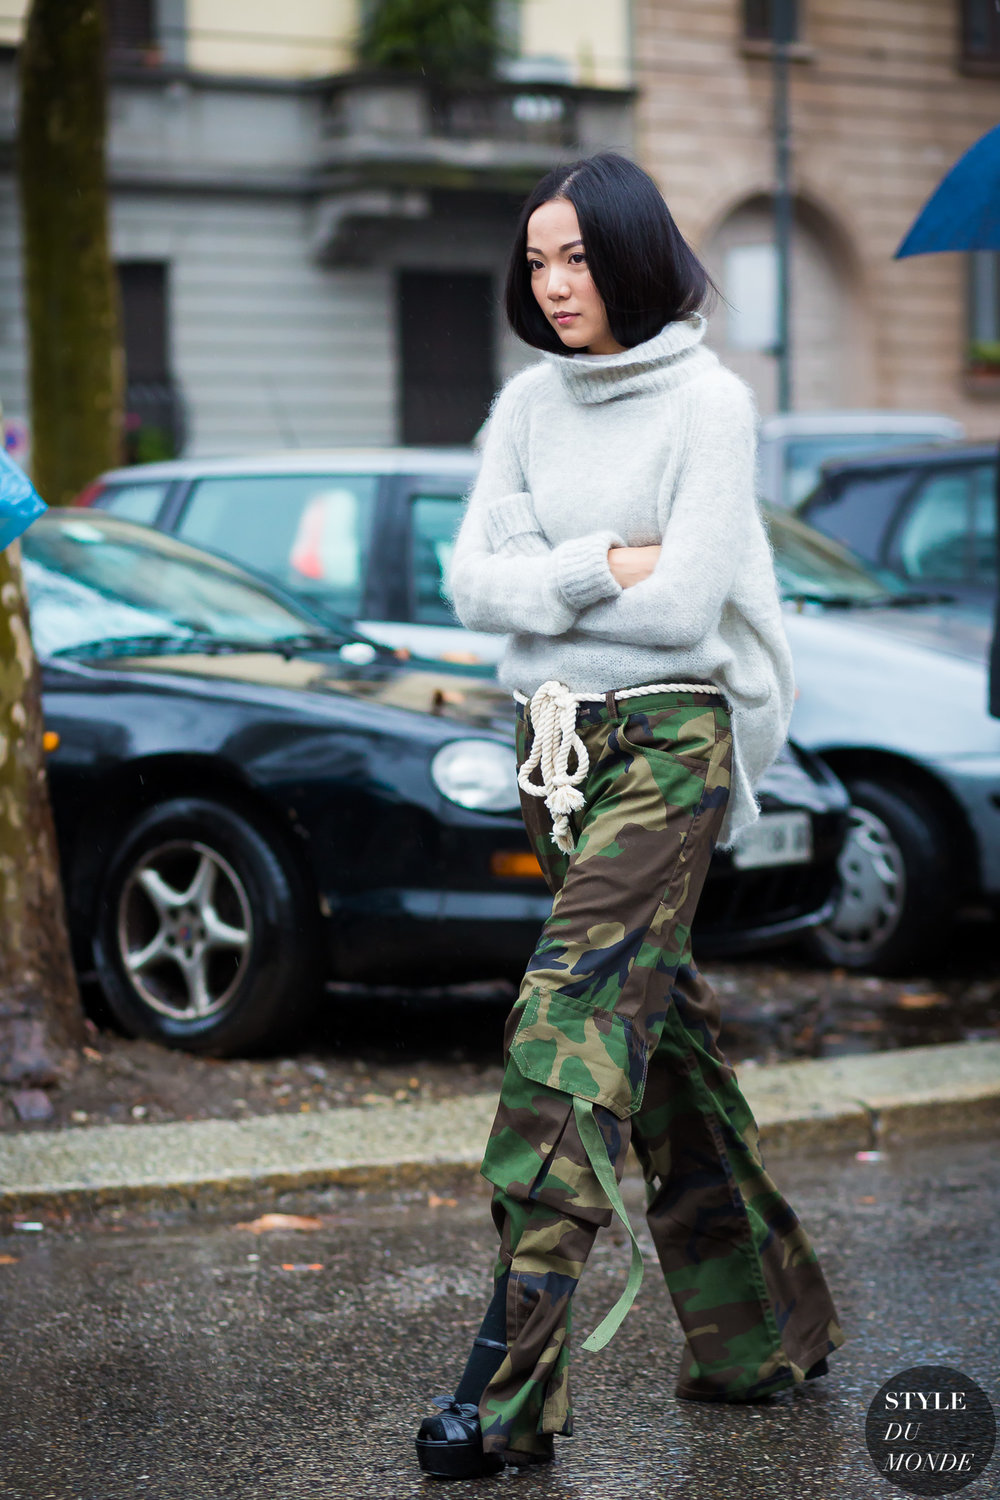 When done properly we see that Comfy Camo is not slouchy! Image via Style du Monde.